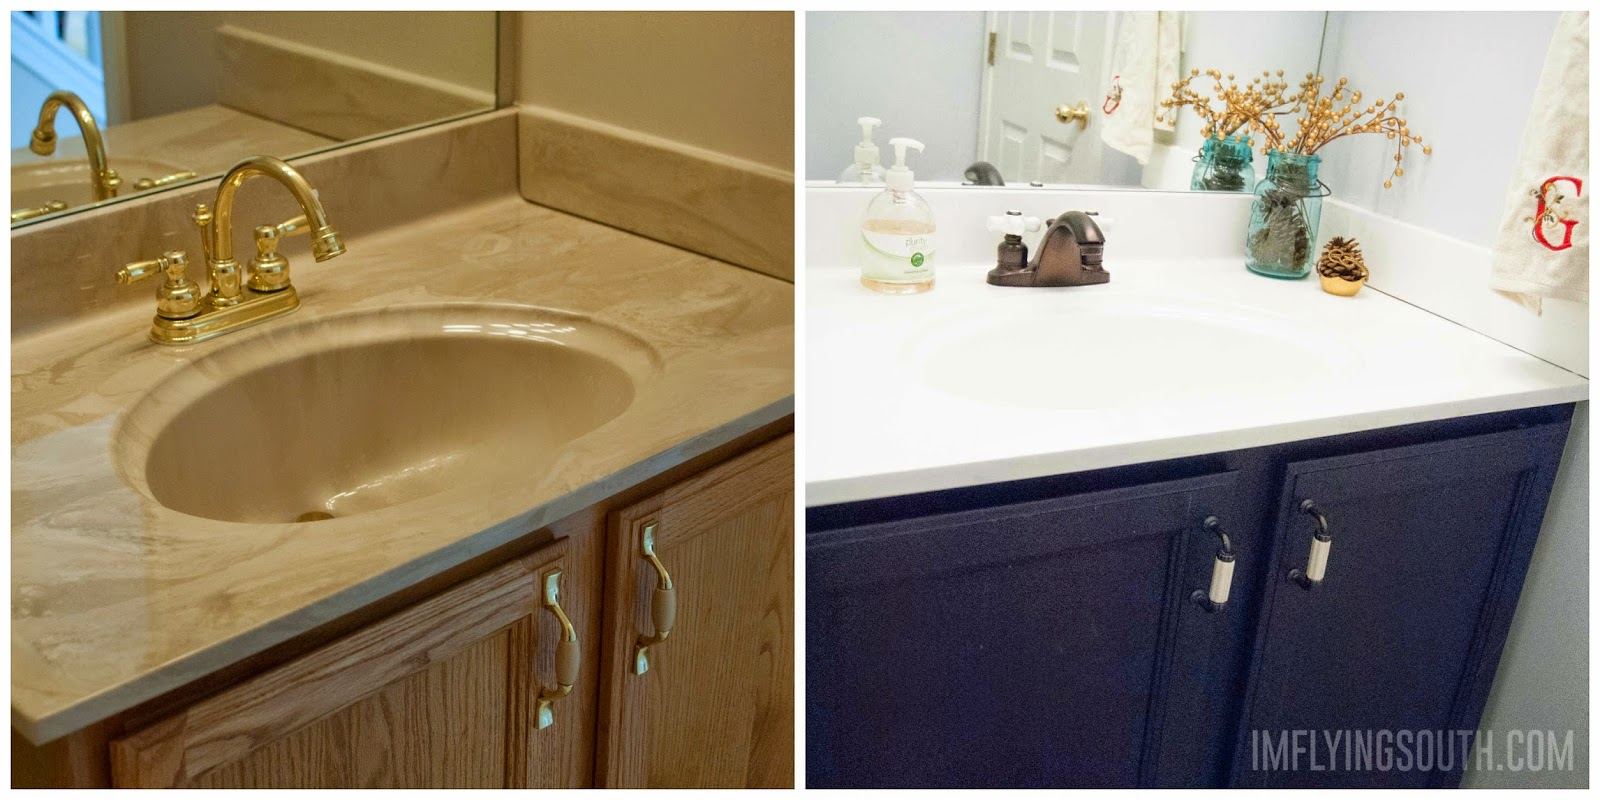 painted bathroom sink tutorial before and after im flying south featured on - Painted Bathroom Cabinets Before And After